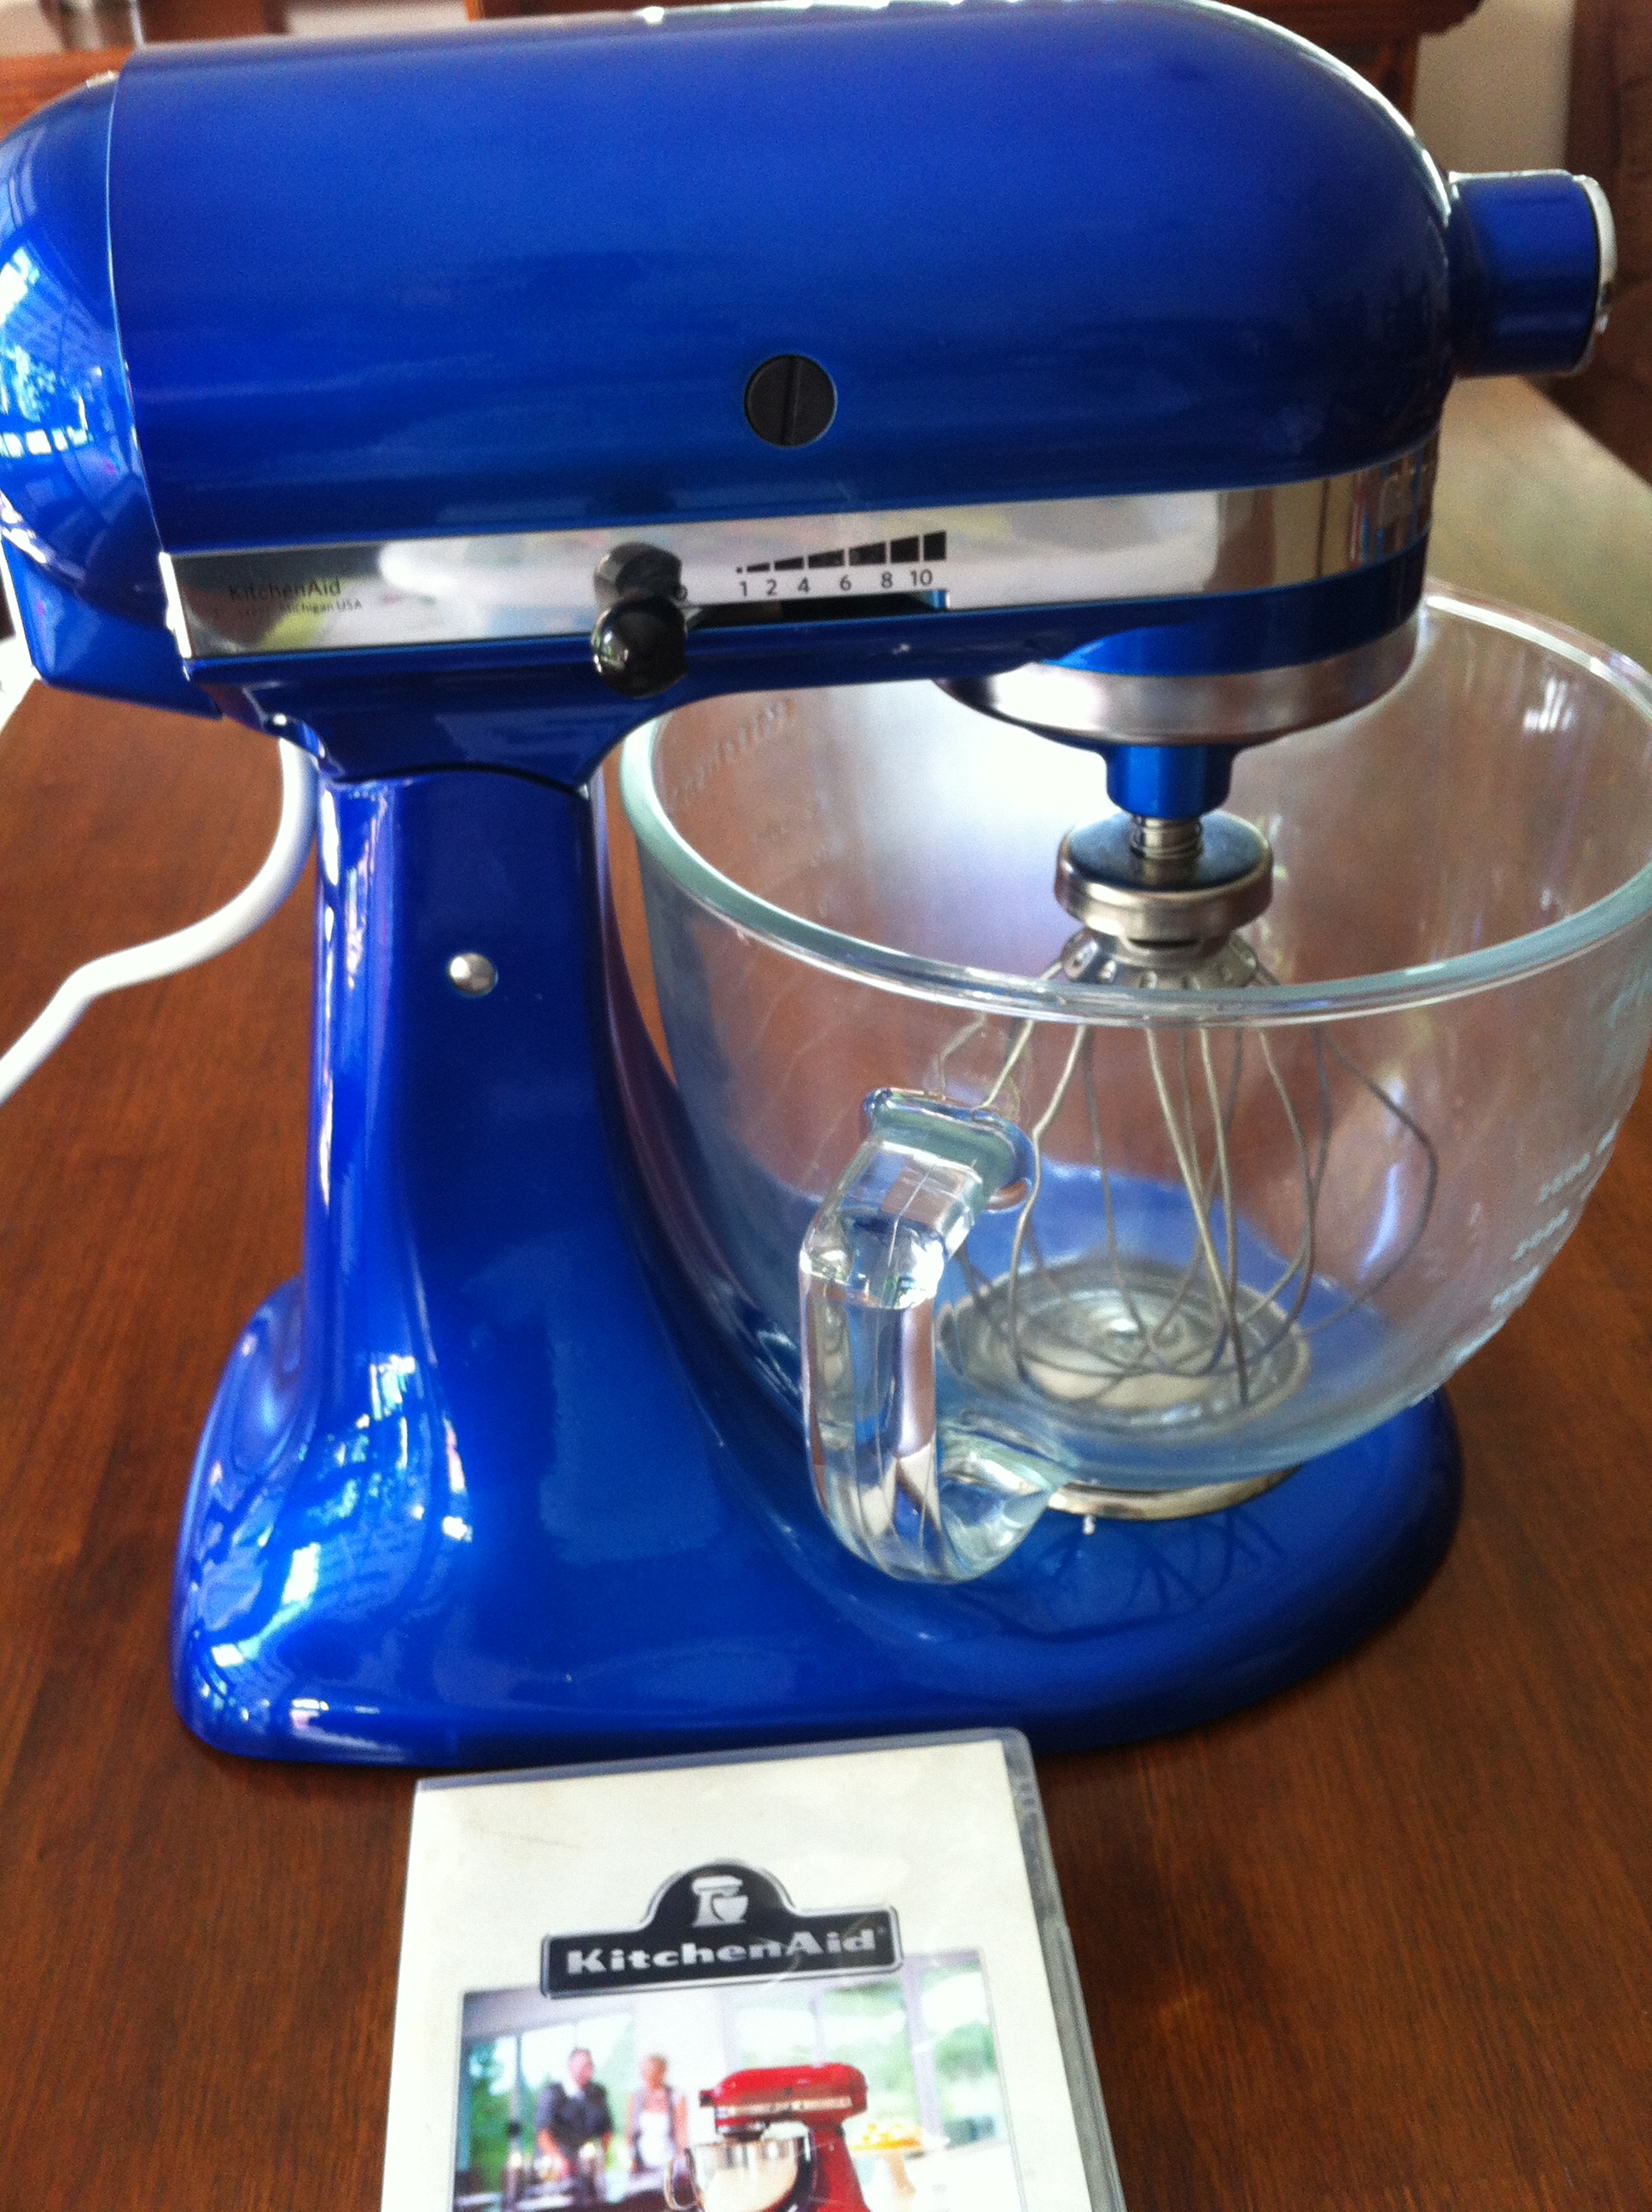 Fifty Shades Of Cake Amp The KitchenAid More Than A Jewel